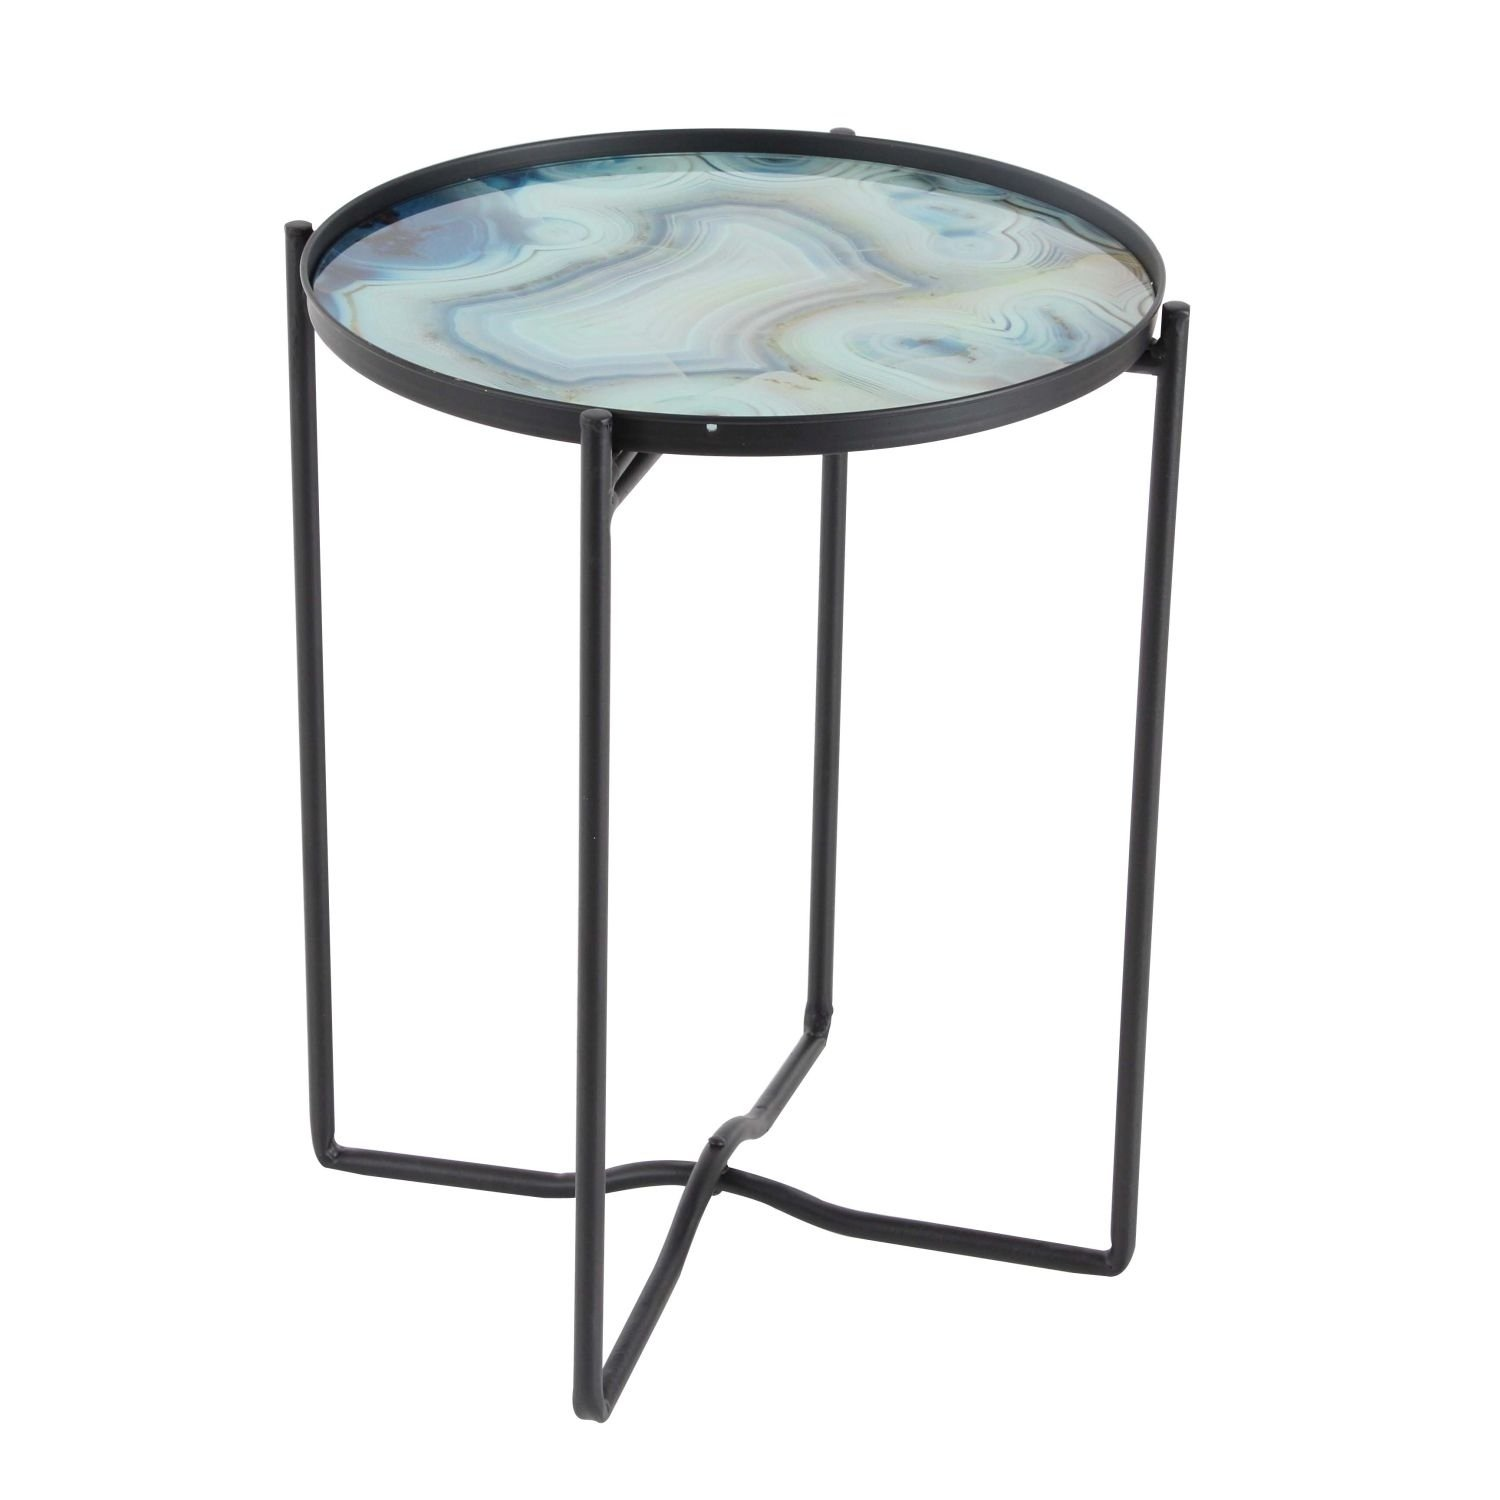 studio metal glass accent table inches wide high garage threshold seal sofa behind local furniture small round lamp silver diy bar ikea garden storage bench floor mirror coffee